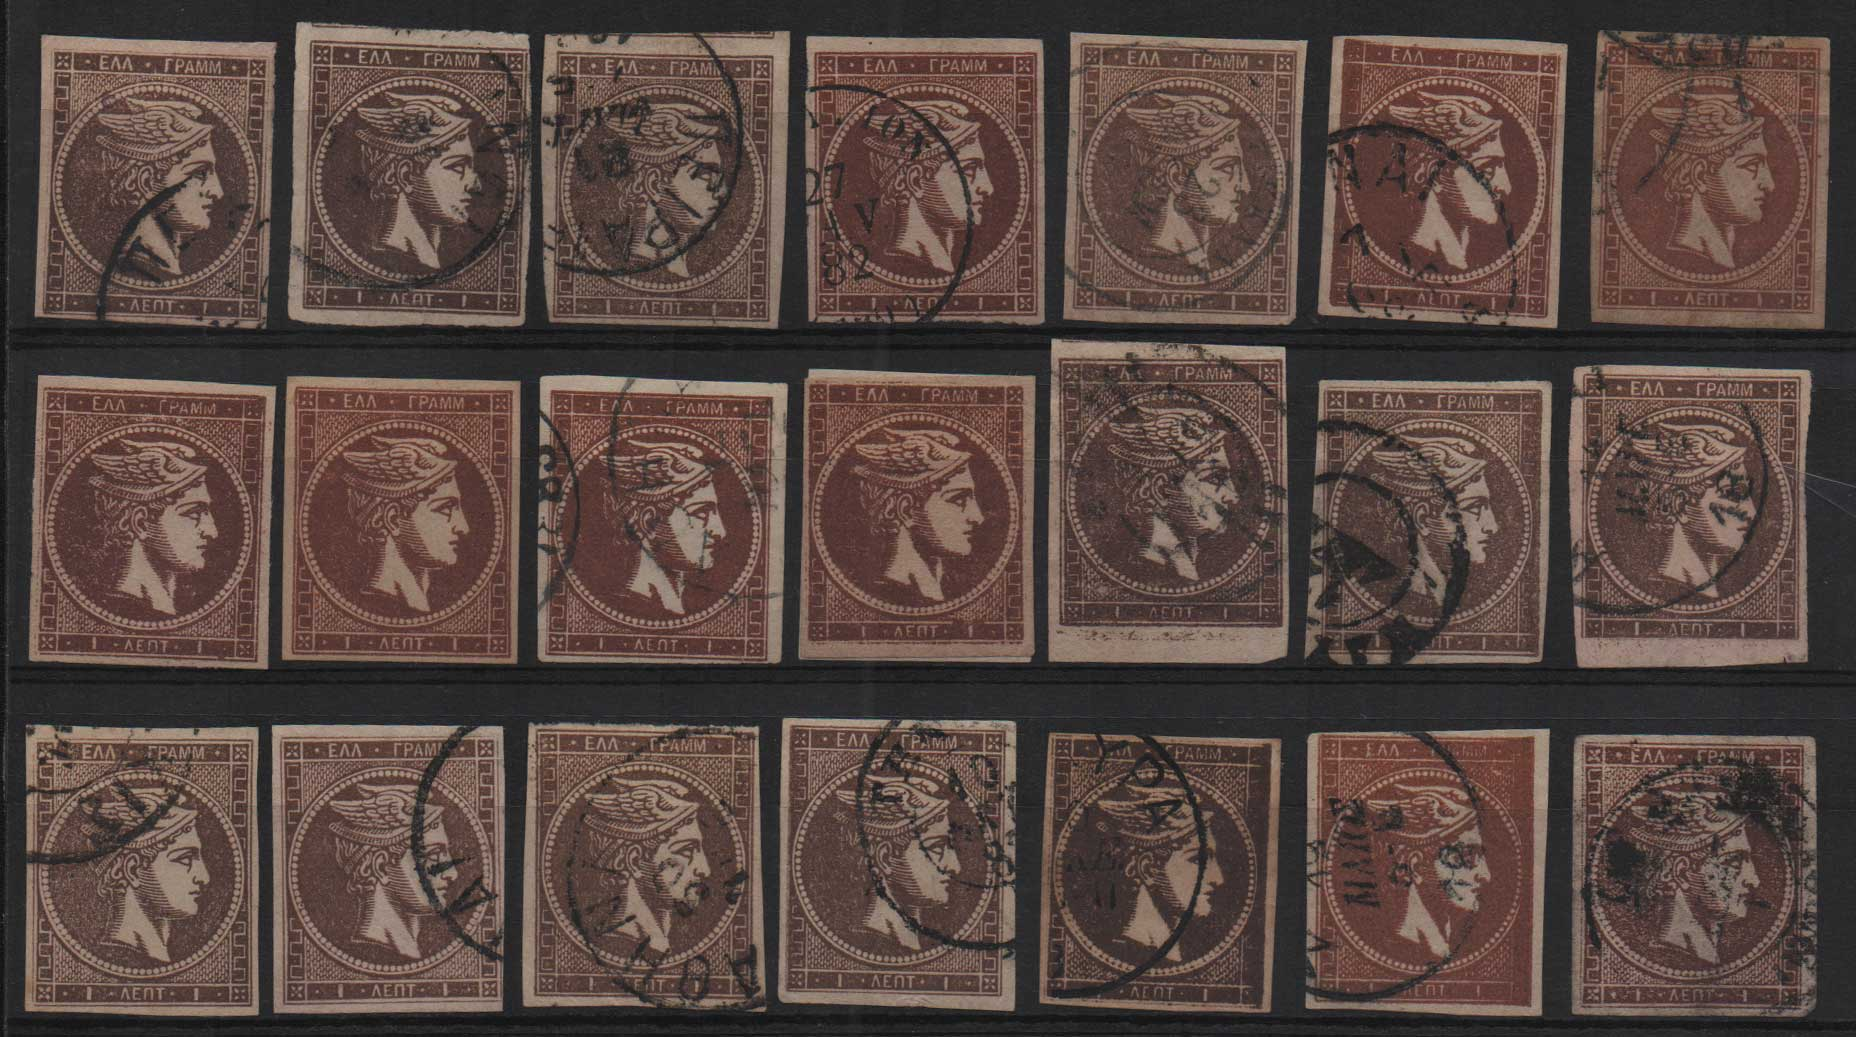 Lot 33 - -  LARGE HERMES HEAD large hermes head -  Athens Auctions Public Auction 74 General Stamp Sale